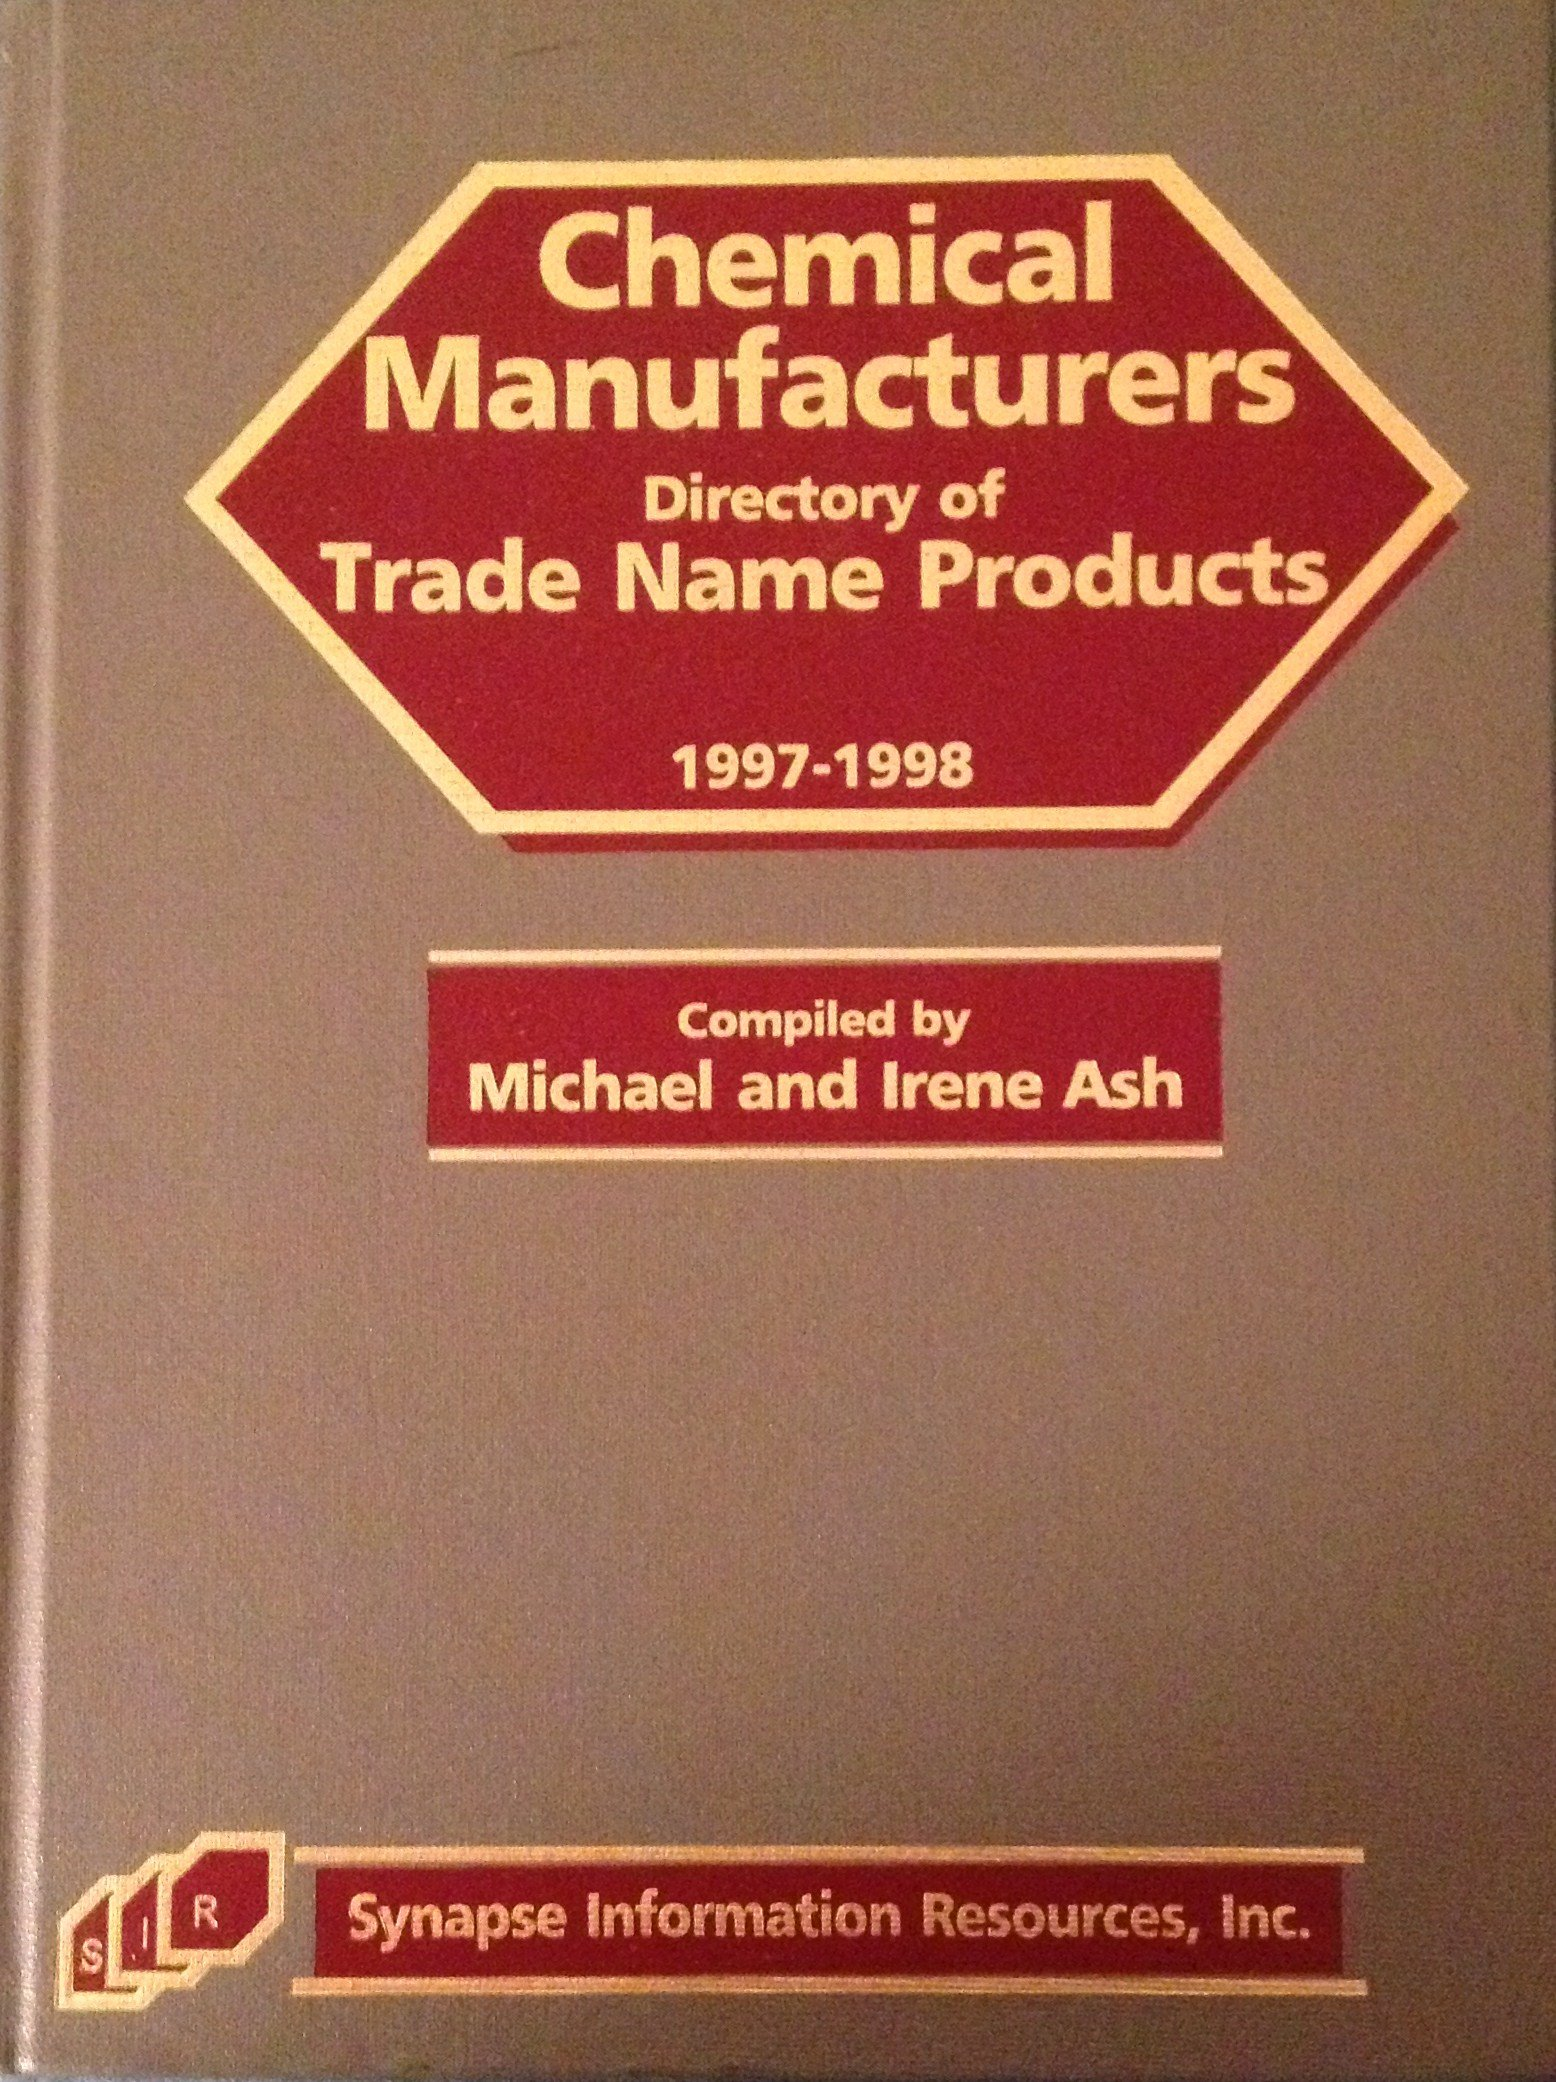 Chemical Manufacturers Directory of Trade Name Products 1997-1998